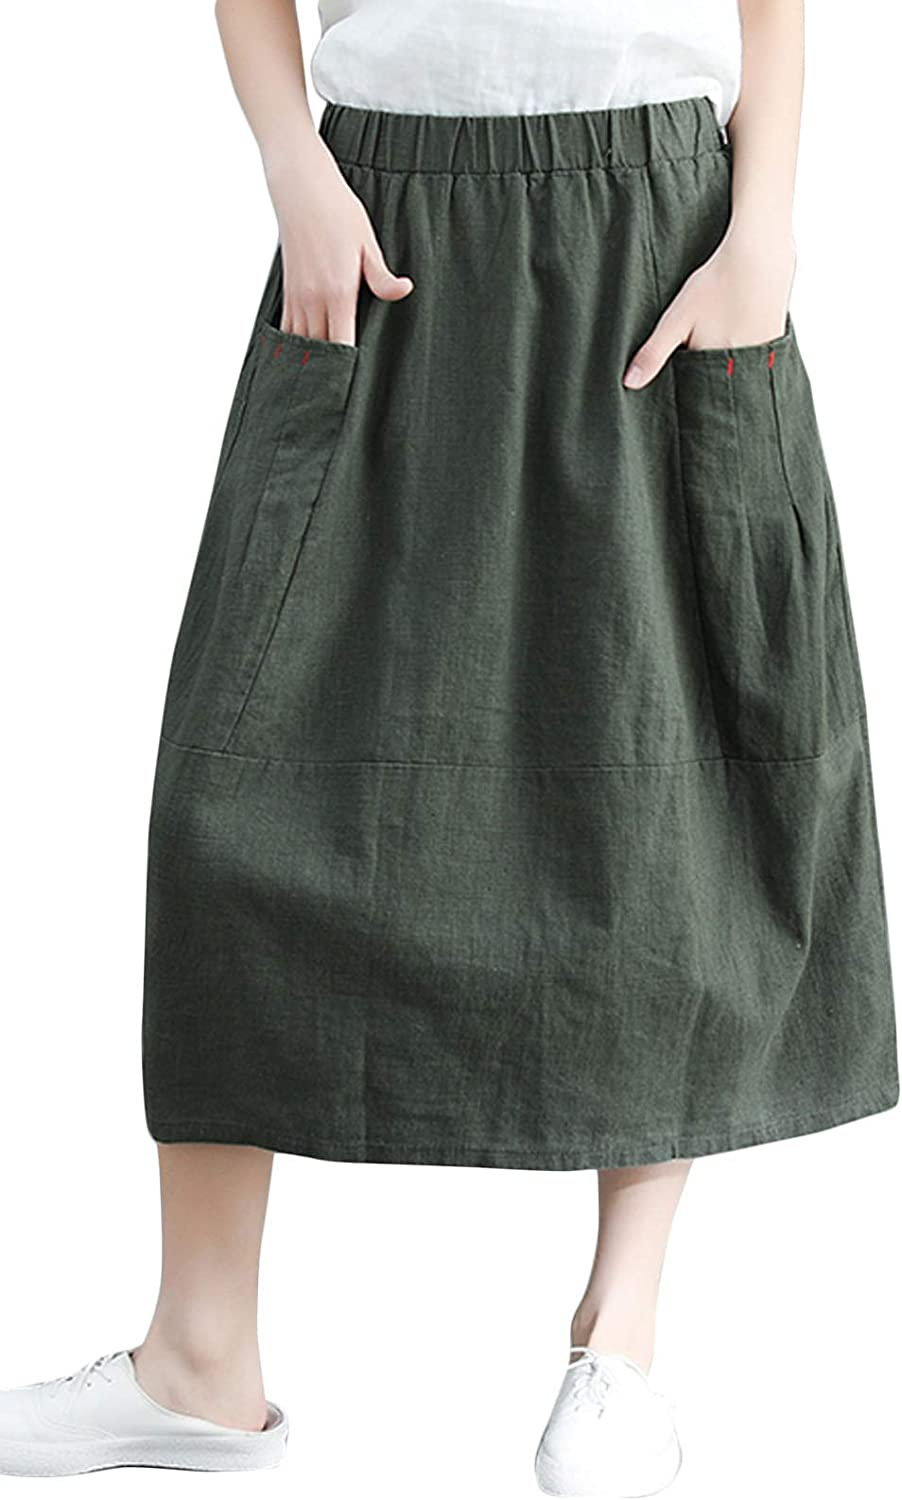 Flygo Women's Casual High Waisted A-Line Midi Skirts with Pockets